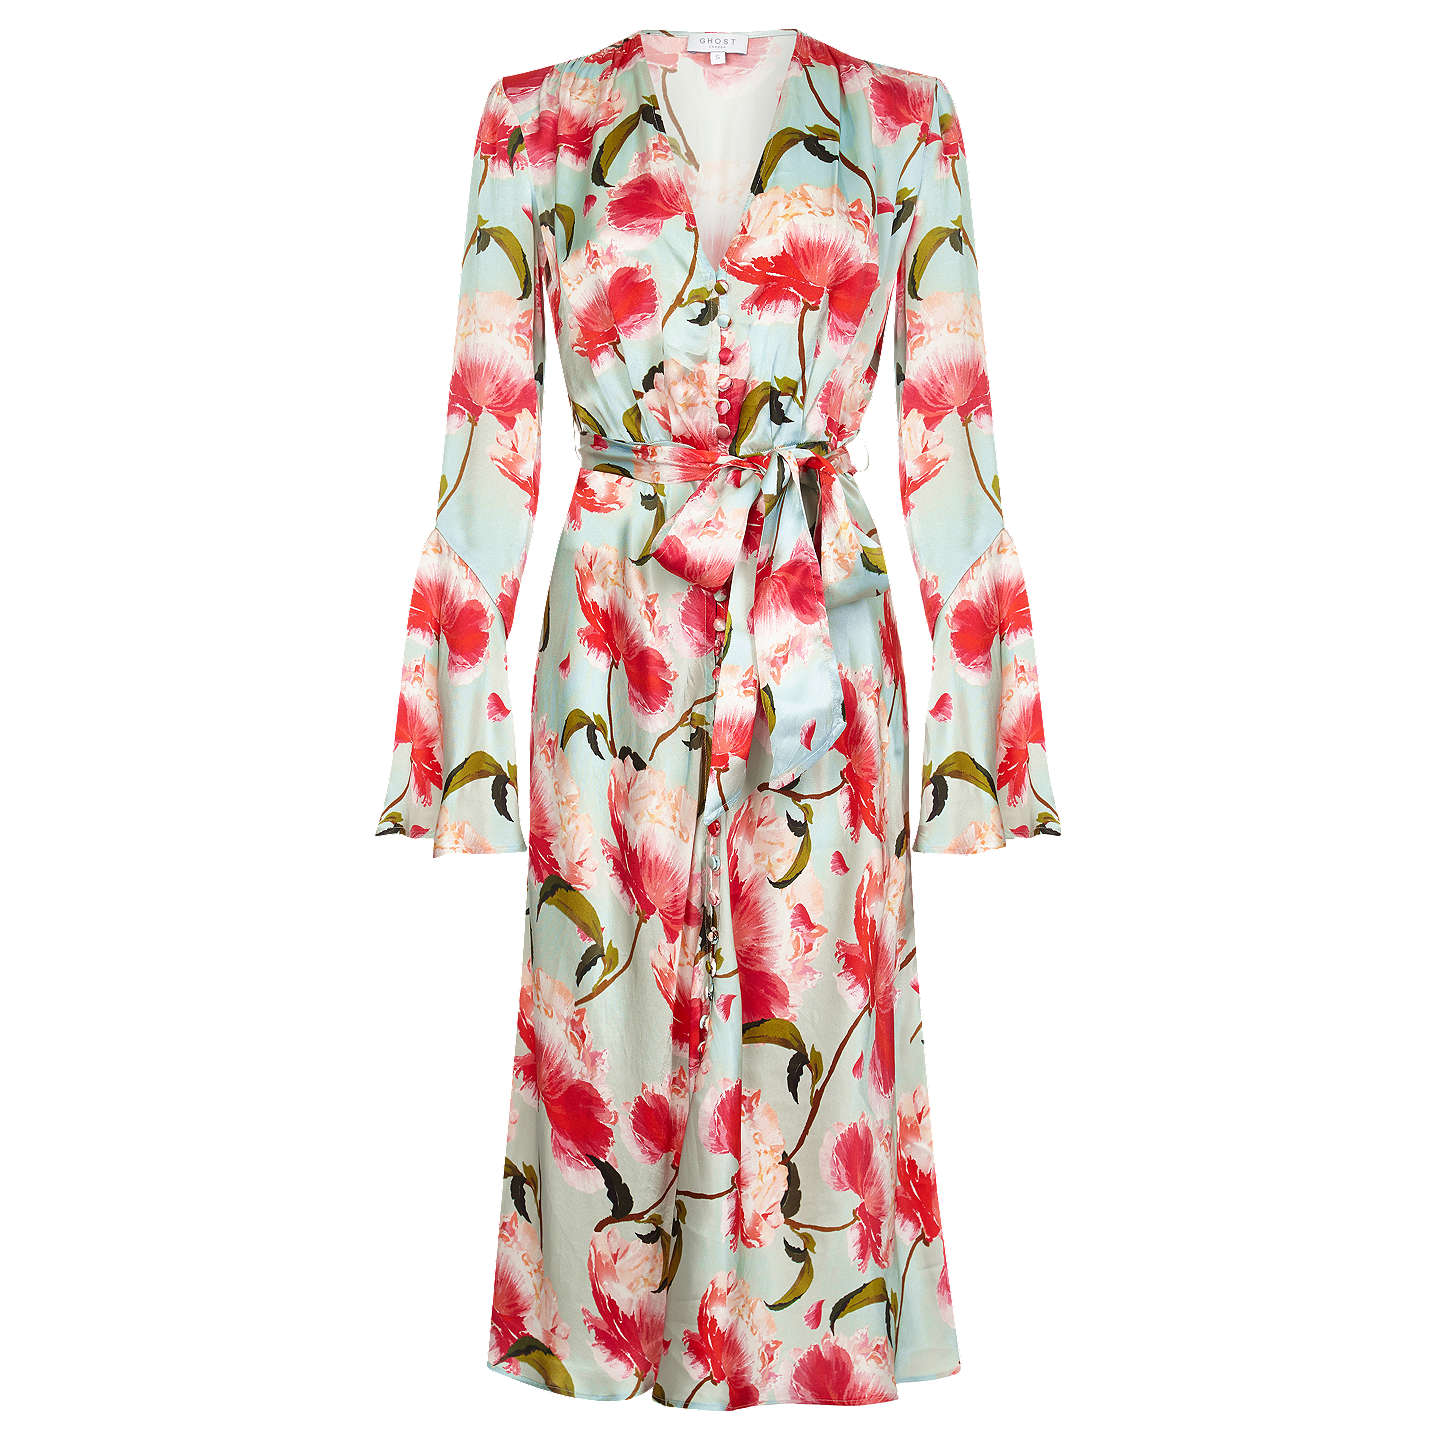 BuyGhost Annabelle Satin Dress, Sabella, XS Online at johnlewis.com